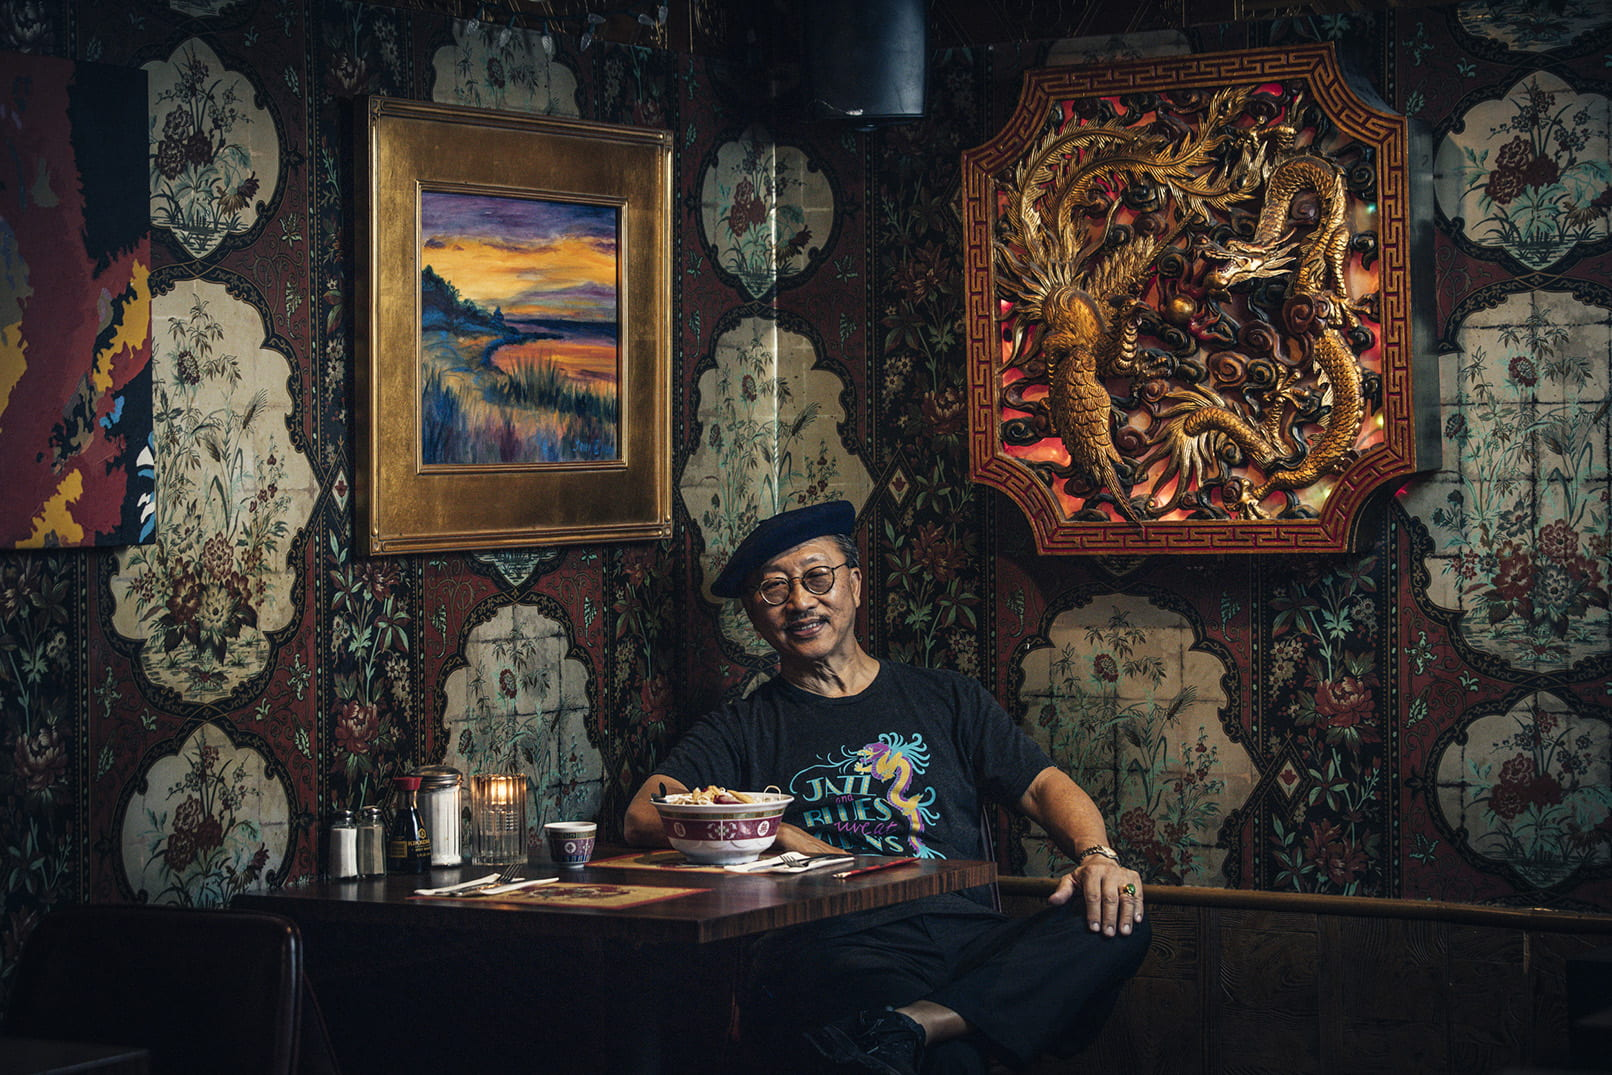 Wearing a shirt that advertises his restaurant as the home of jazz and blues, John Chan '74 poses in his restaurant dining room. One of his watercolor paintings is to his right.